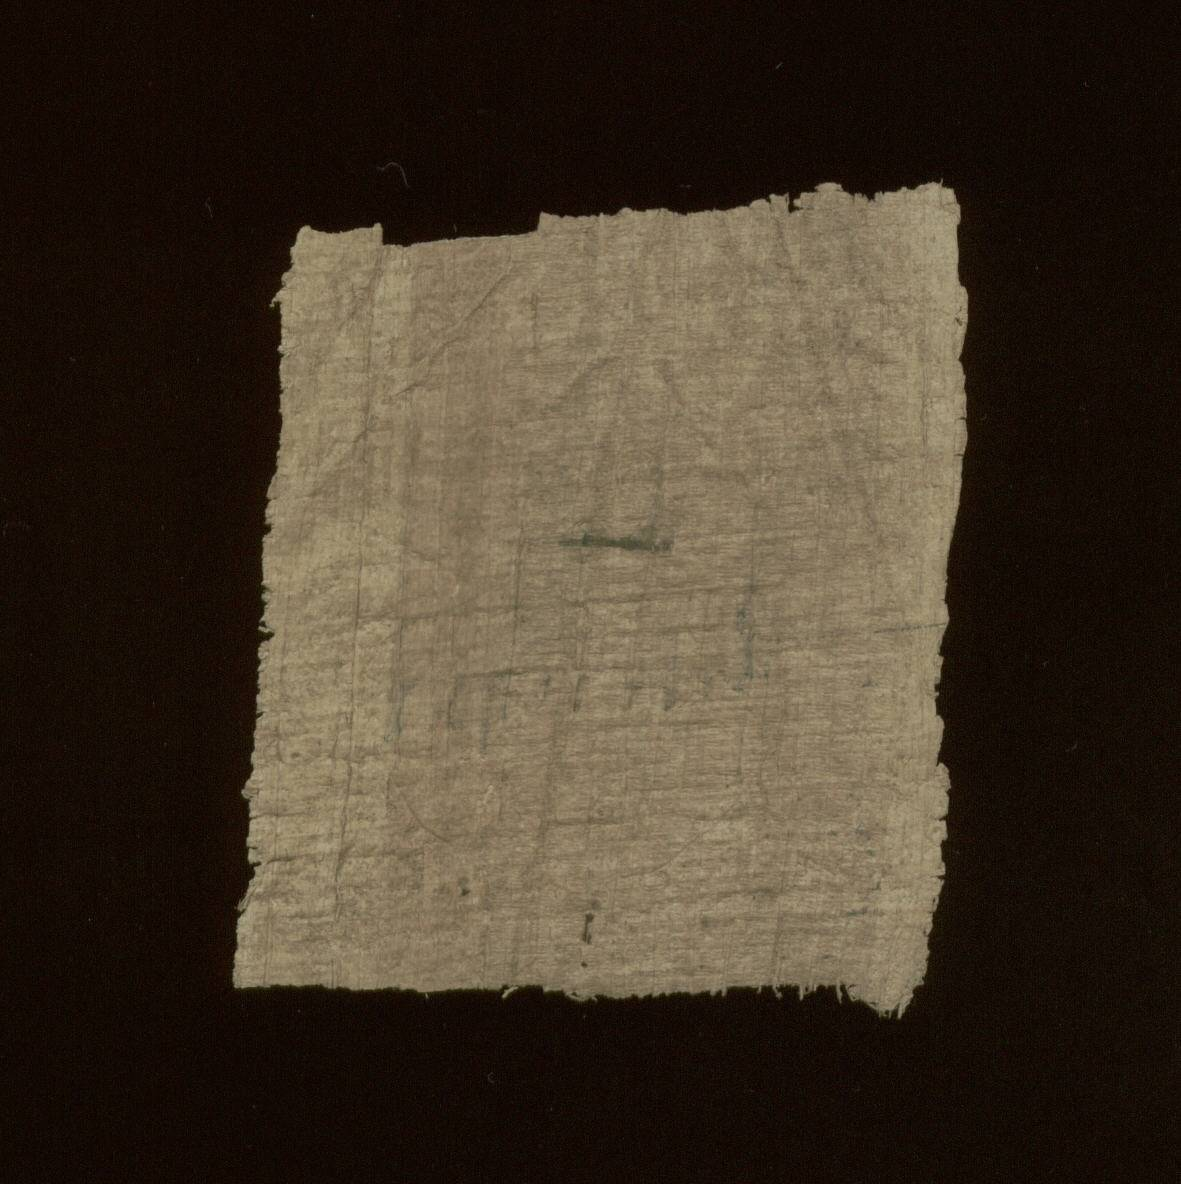 Greek Manuscript Fragment written on papyrus - Enlarged View - Verso